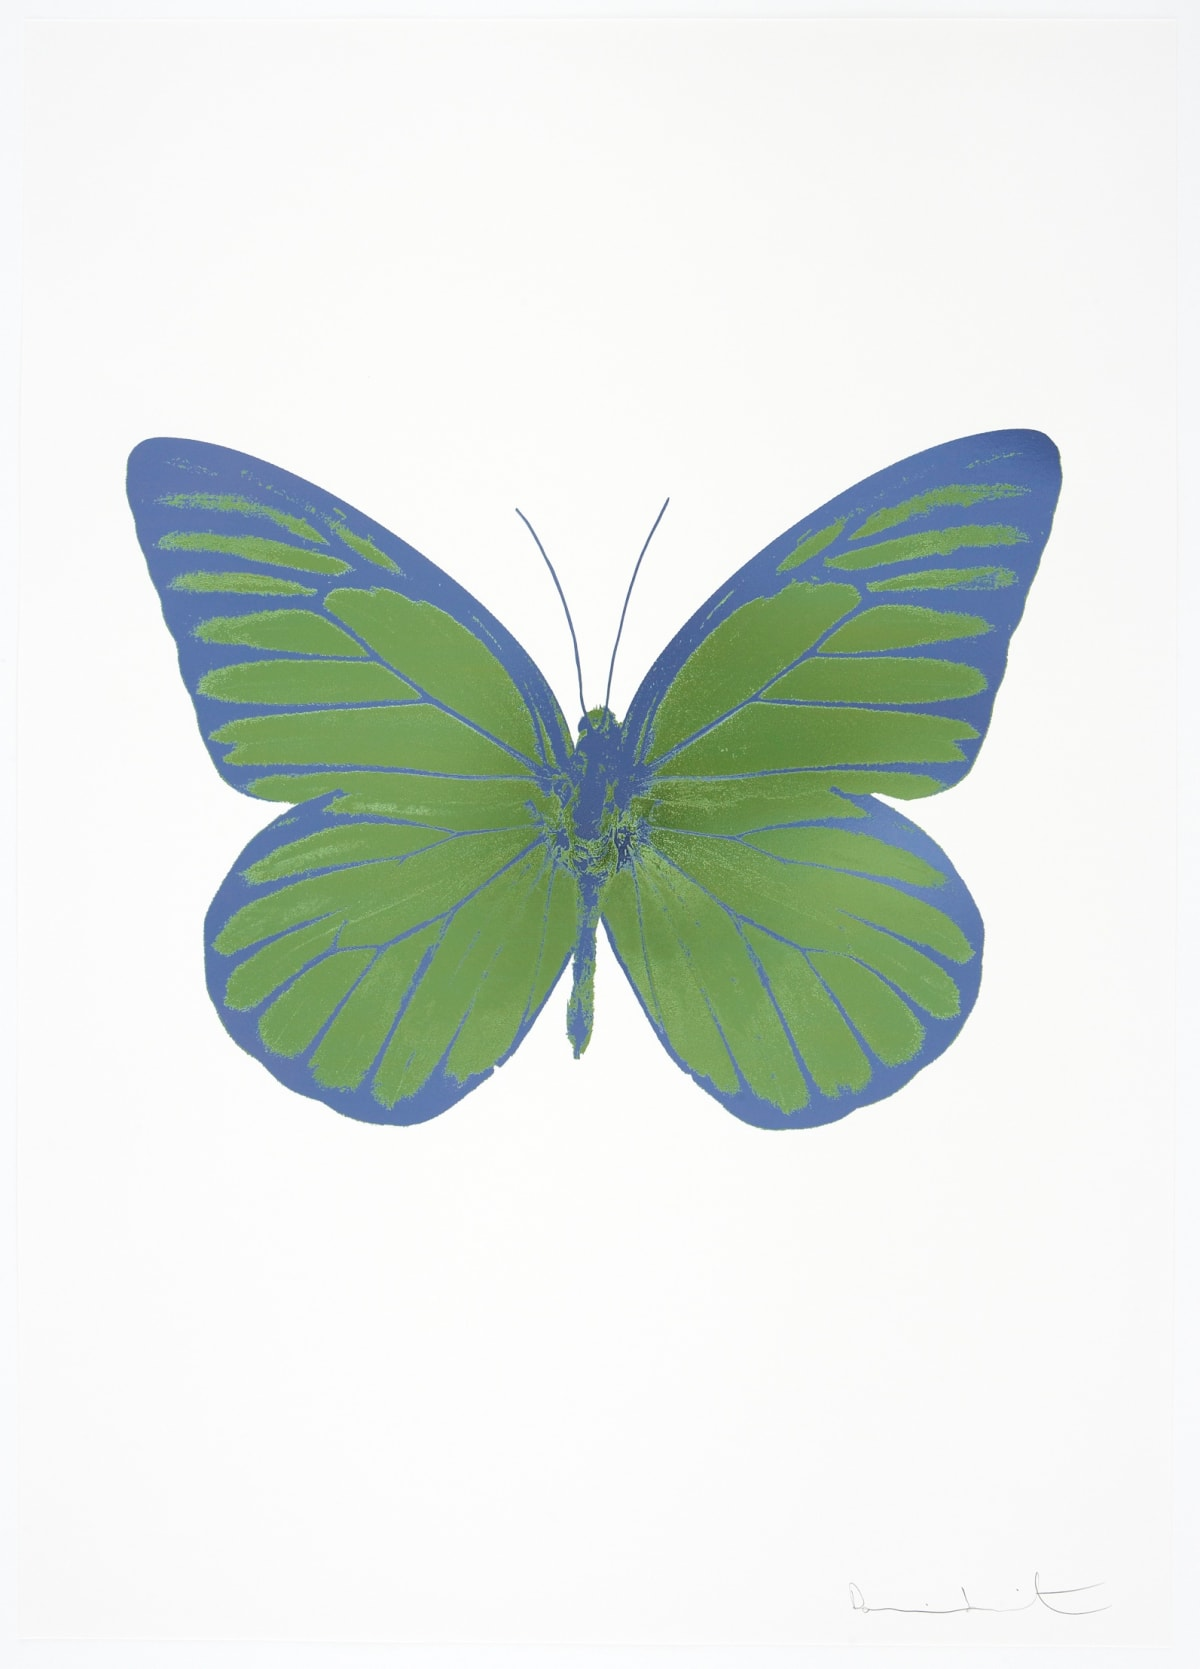 Damien Hirst The Souls I - Leaf Green/Blind Impression/ Cornflower Blue, 2010 2 colour foil block on 300gsm Arches 88 archival paper. Signed and numbered. Published by Paul Stolper and Other Criteria 72 x 51cm OC7813 / 659-76 Edition of 15